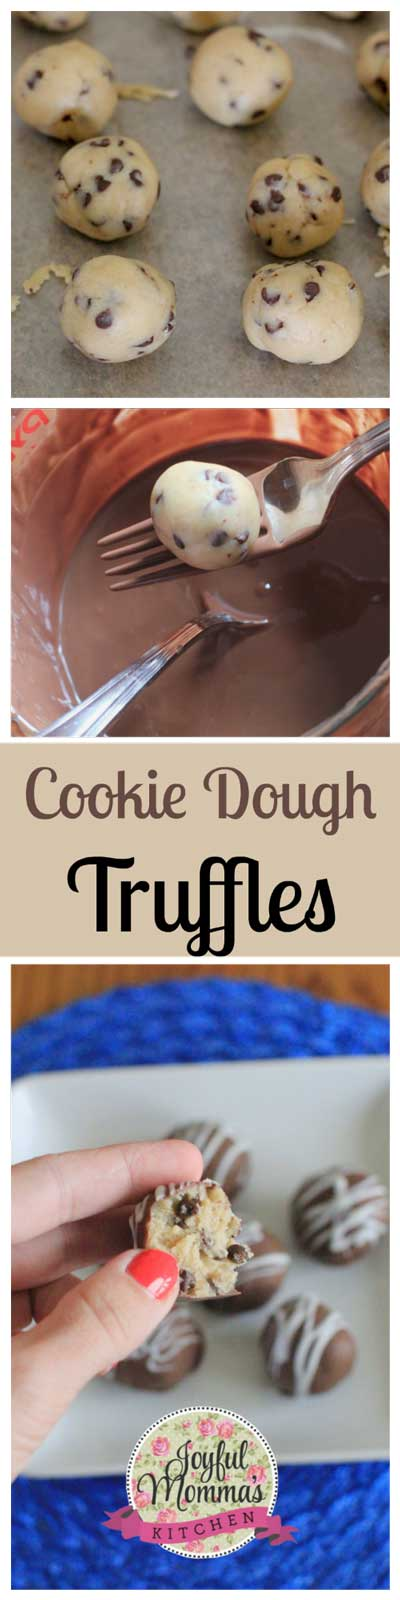 CookieDoughTruffleCollage